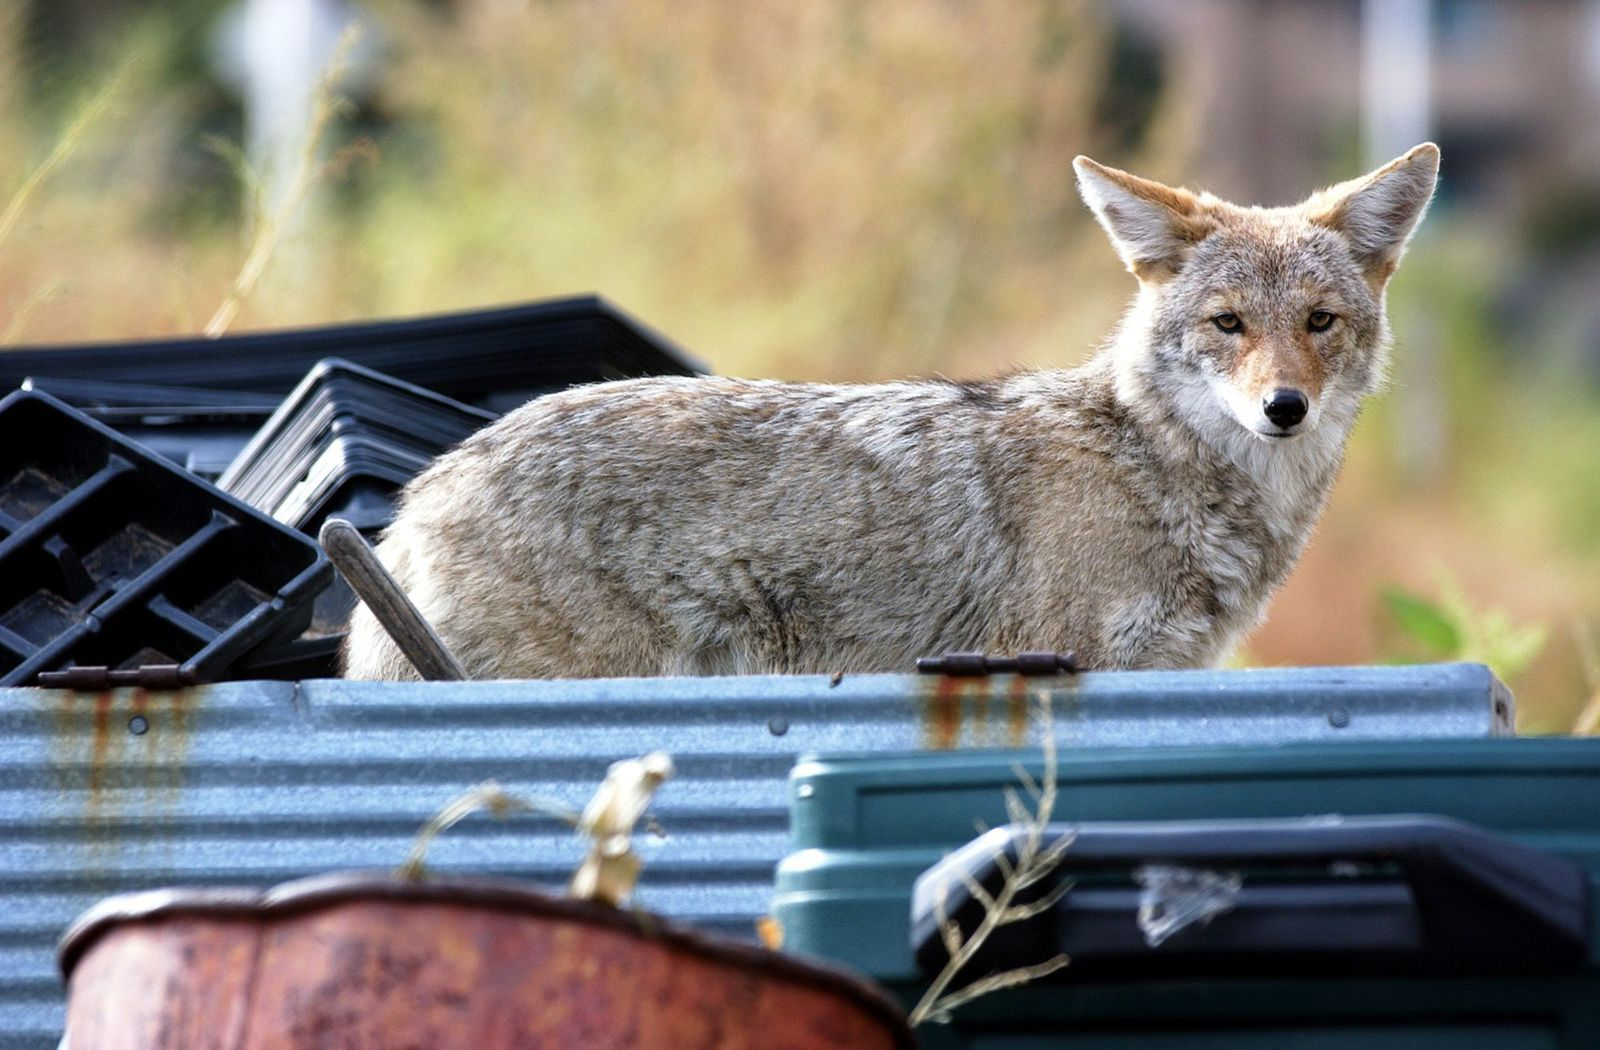 Urban Coyotes Eat A Lot of Garbage—And Cats in 2020